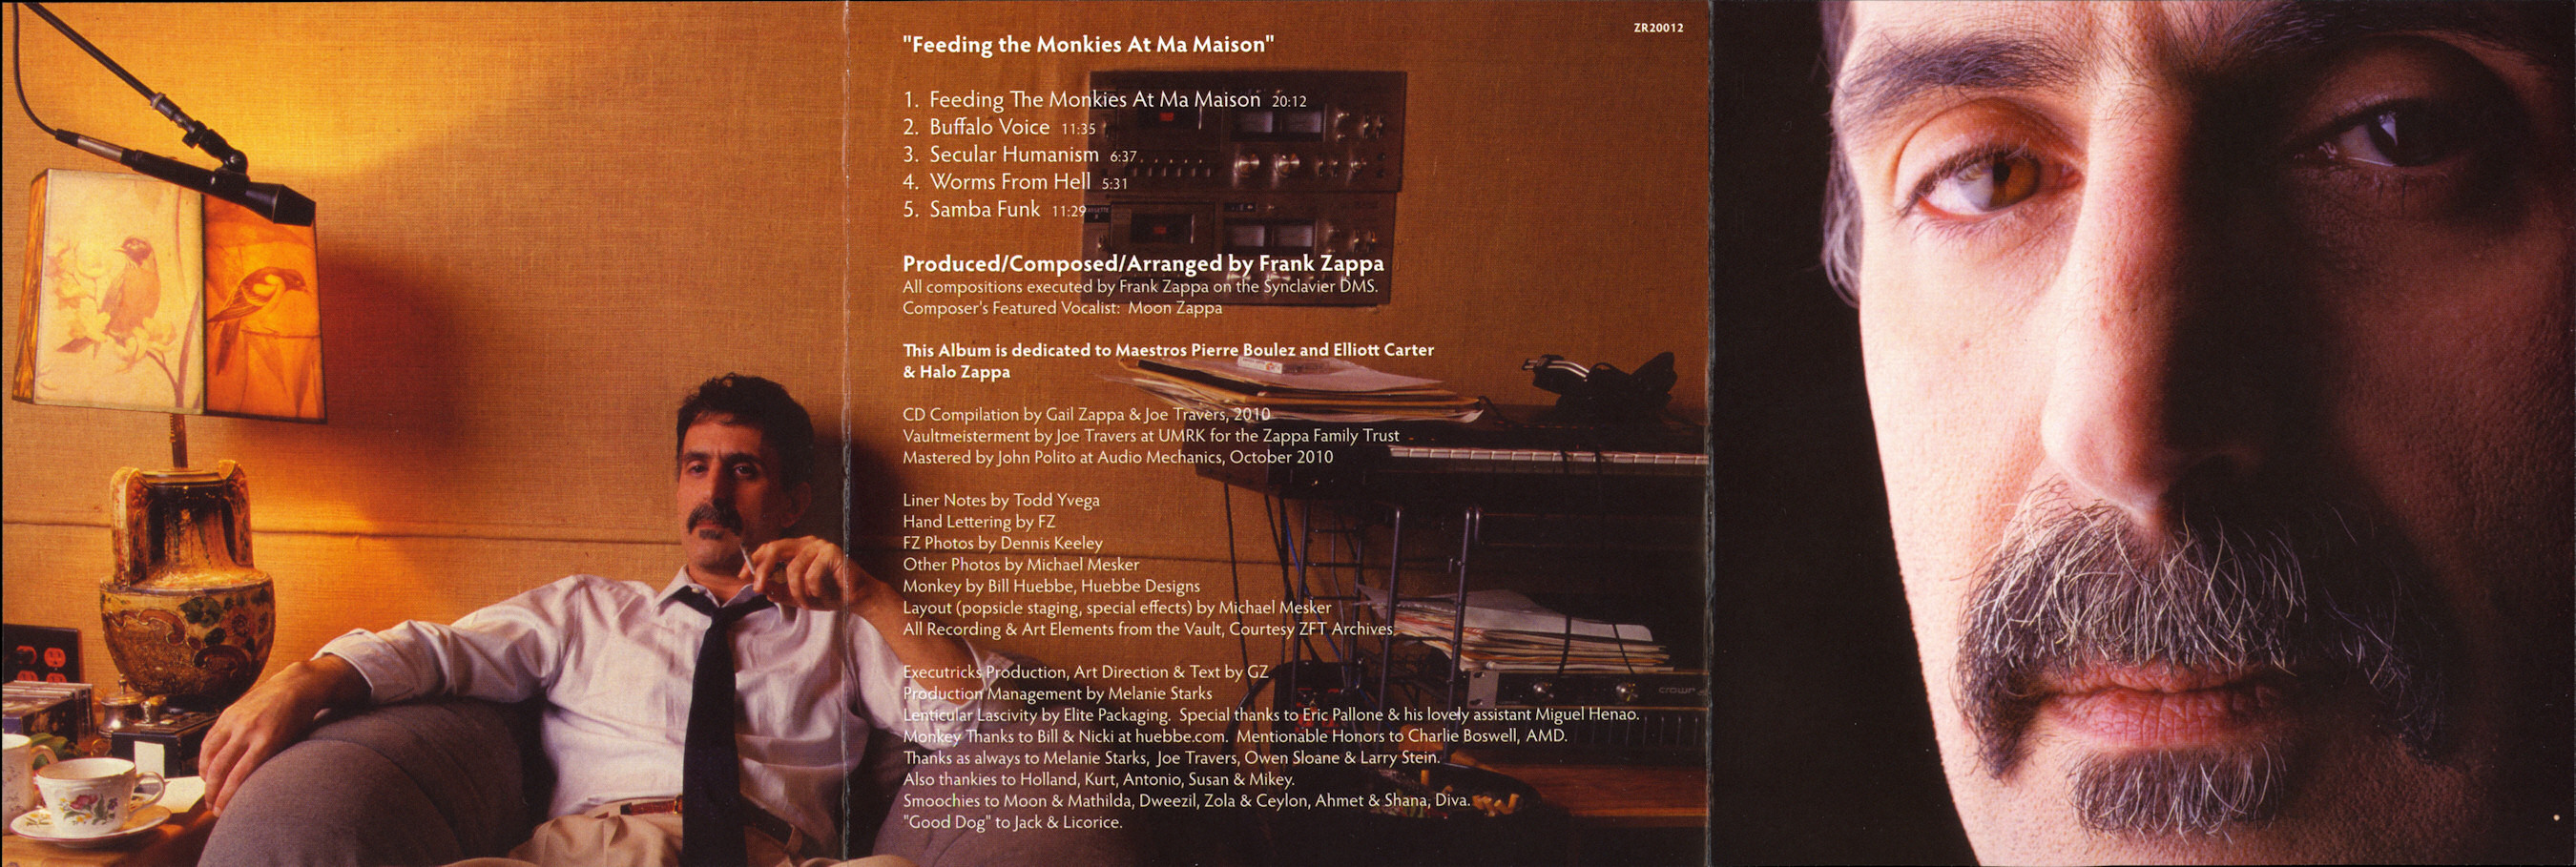 Frank Zappa Official Release 90 Feeding The Monkies At